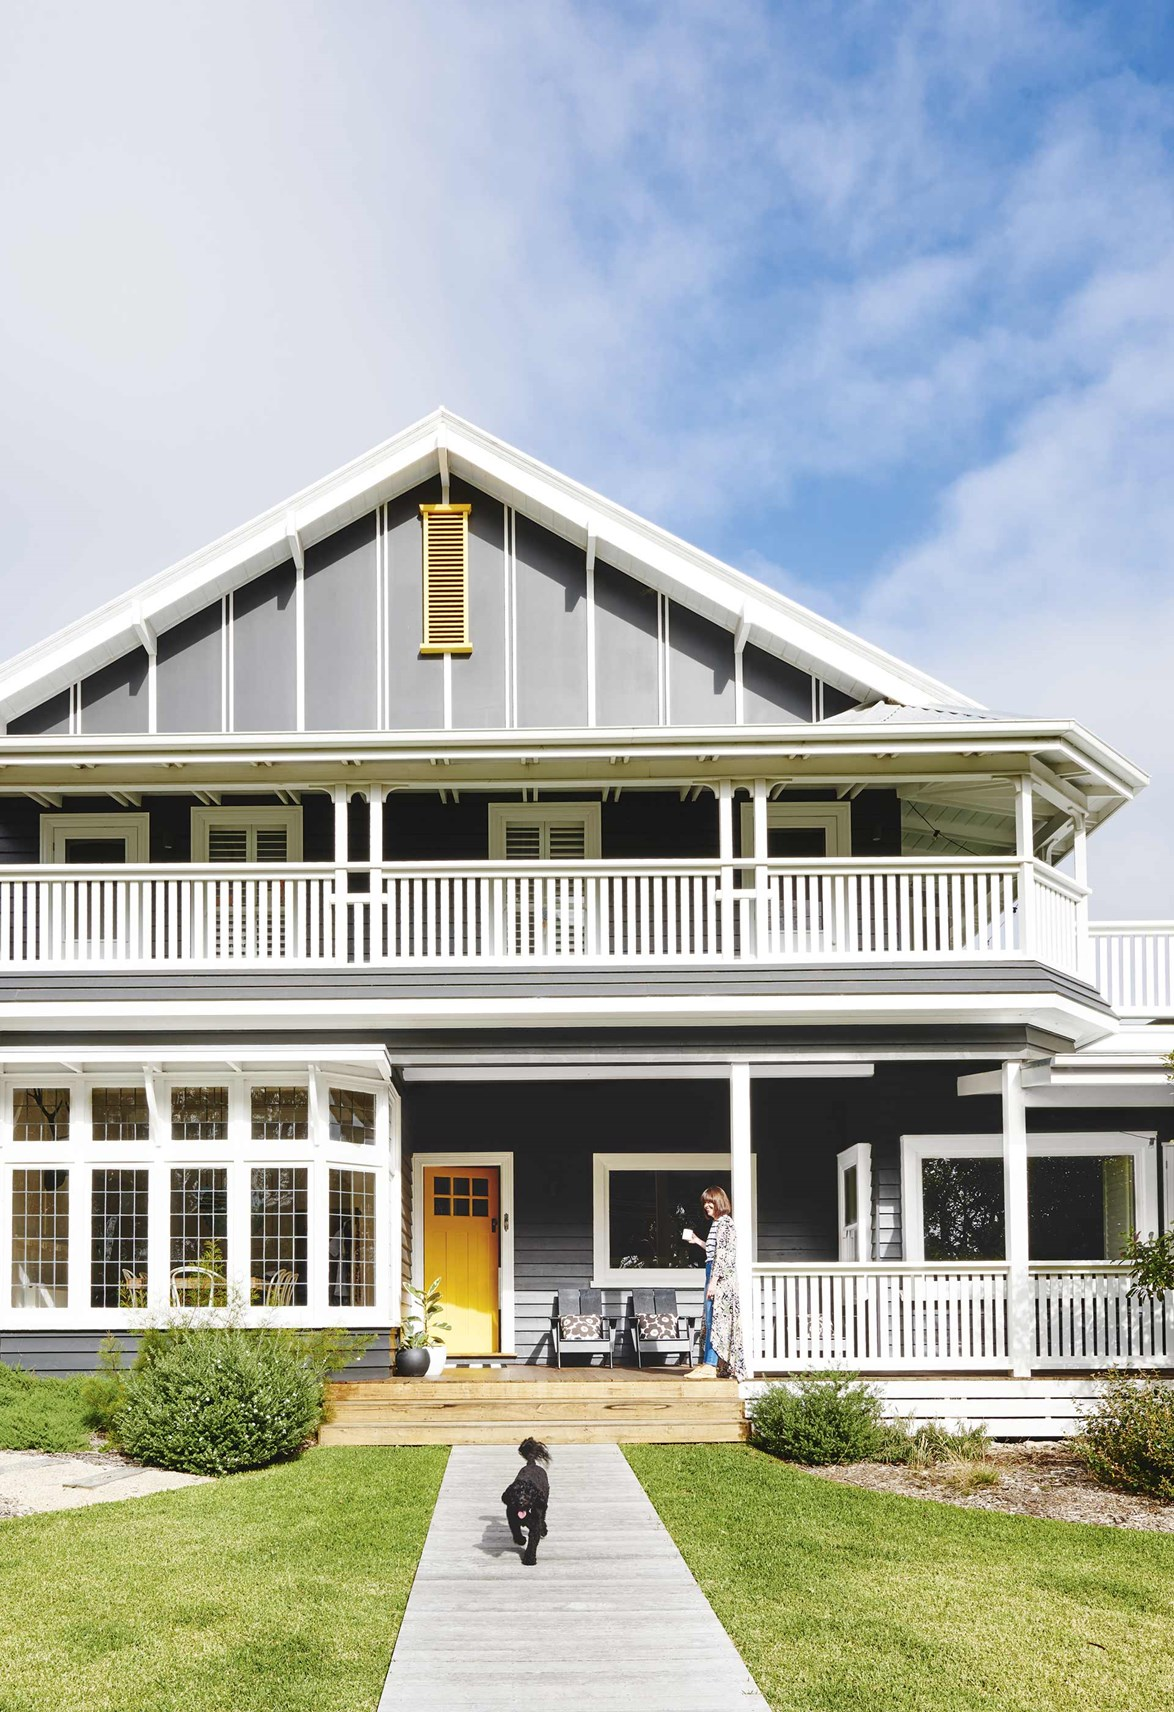 """After a couple of years in the US, this Victorian family returned home to renovate what was to be their forever home by the beach in Barwon Heads. They transformed a two-storey [1920s Californian bungalow](https://www.homestolove.com.au/californian-bungalow-barwon-heads-17909